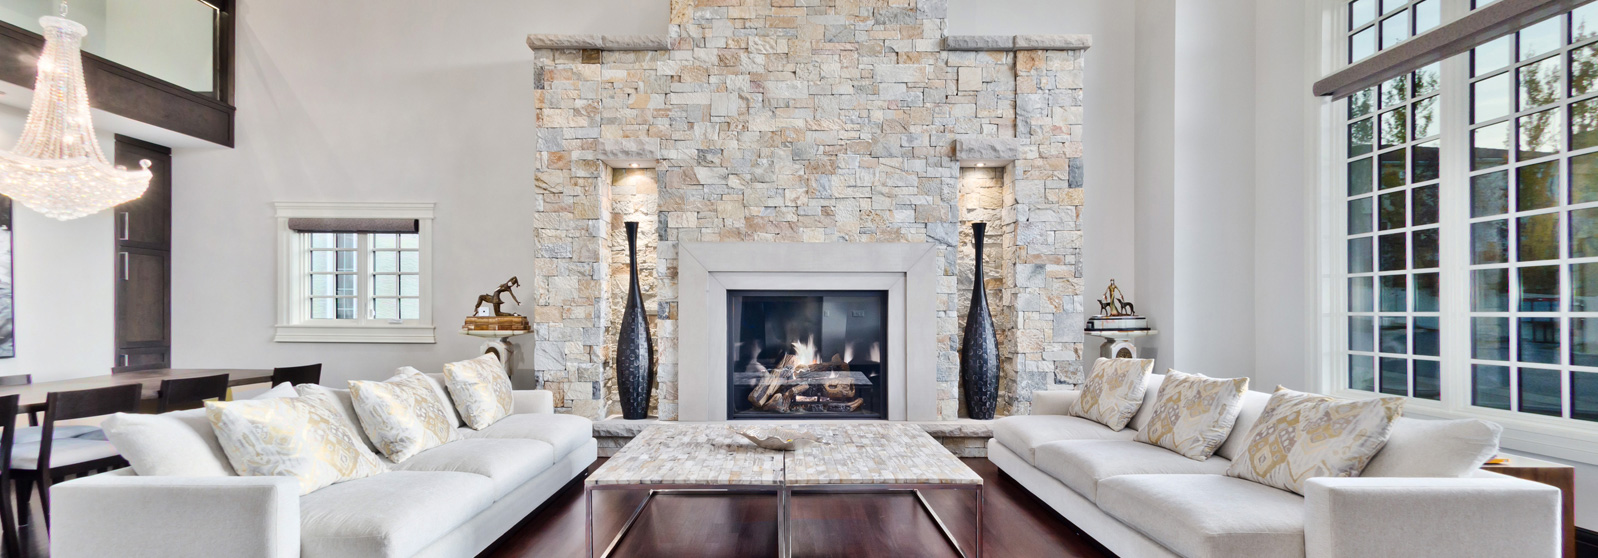 living-room white-stone